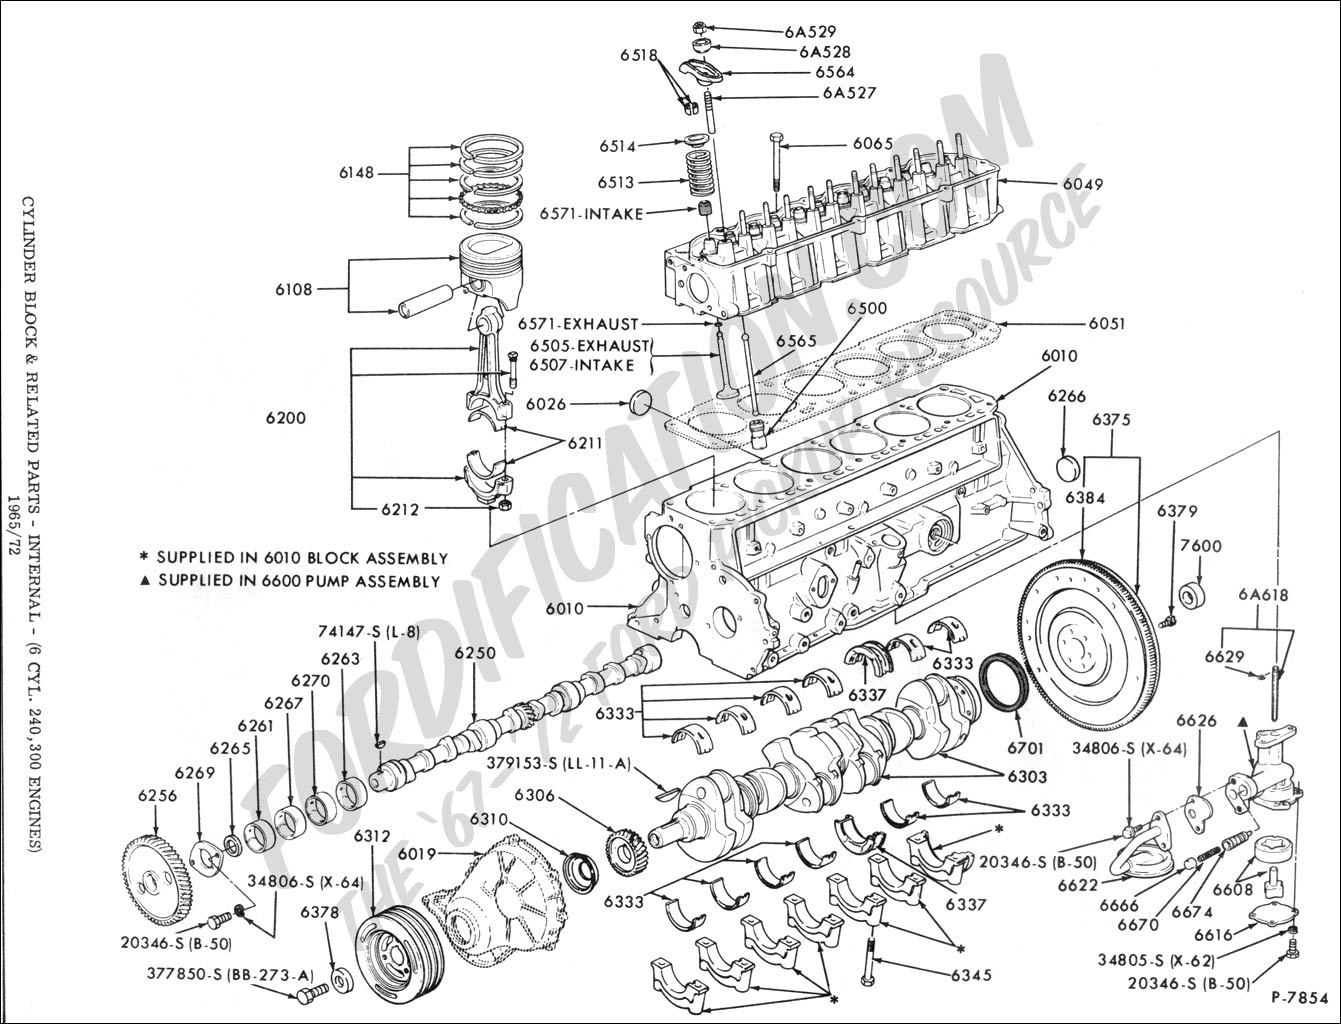 diagram] ford 289 motor diagram full version hd quality motor diagram -  lawiring.prolocomontefano.it  diagram database - prolocomontefano.it